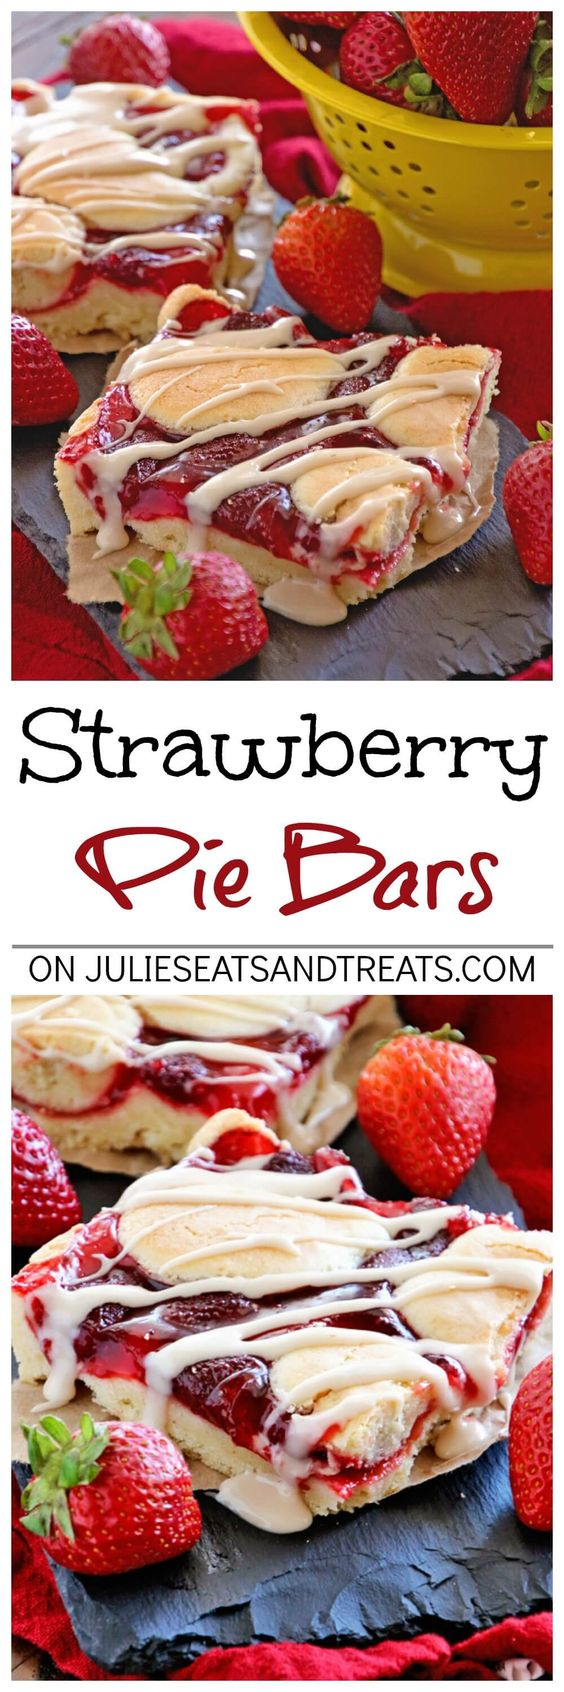 pie pie bars pie fillings crusts strawberries pies bar almonds